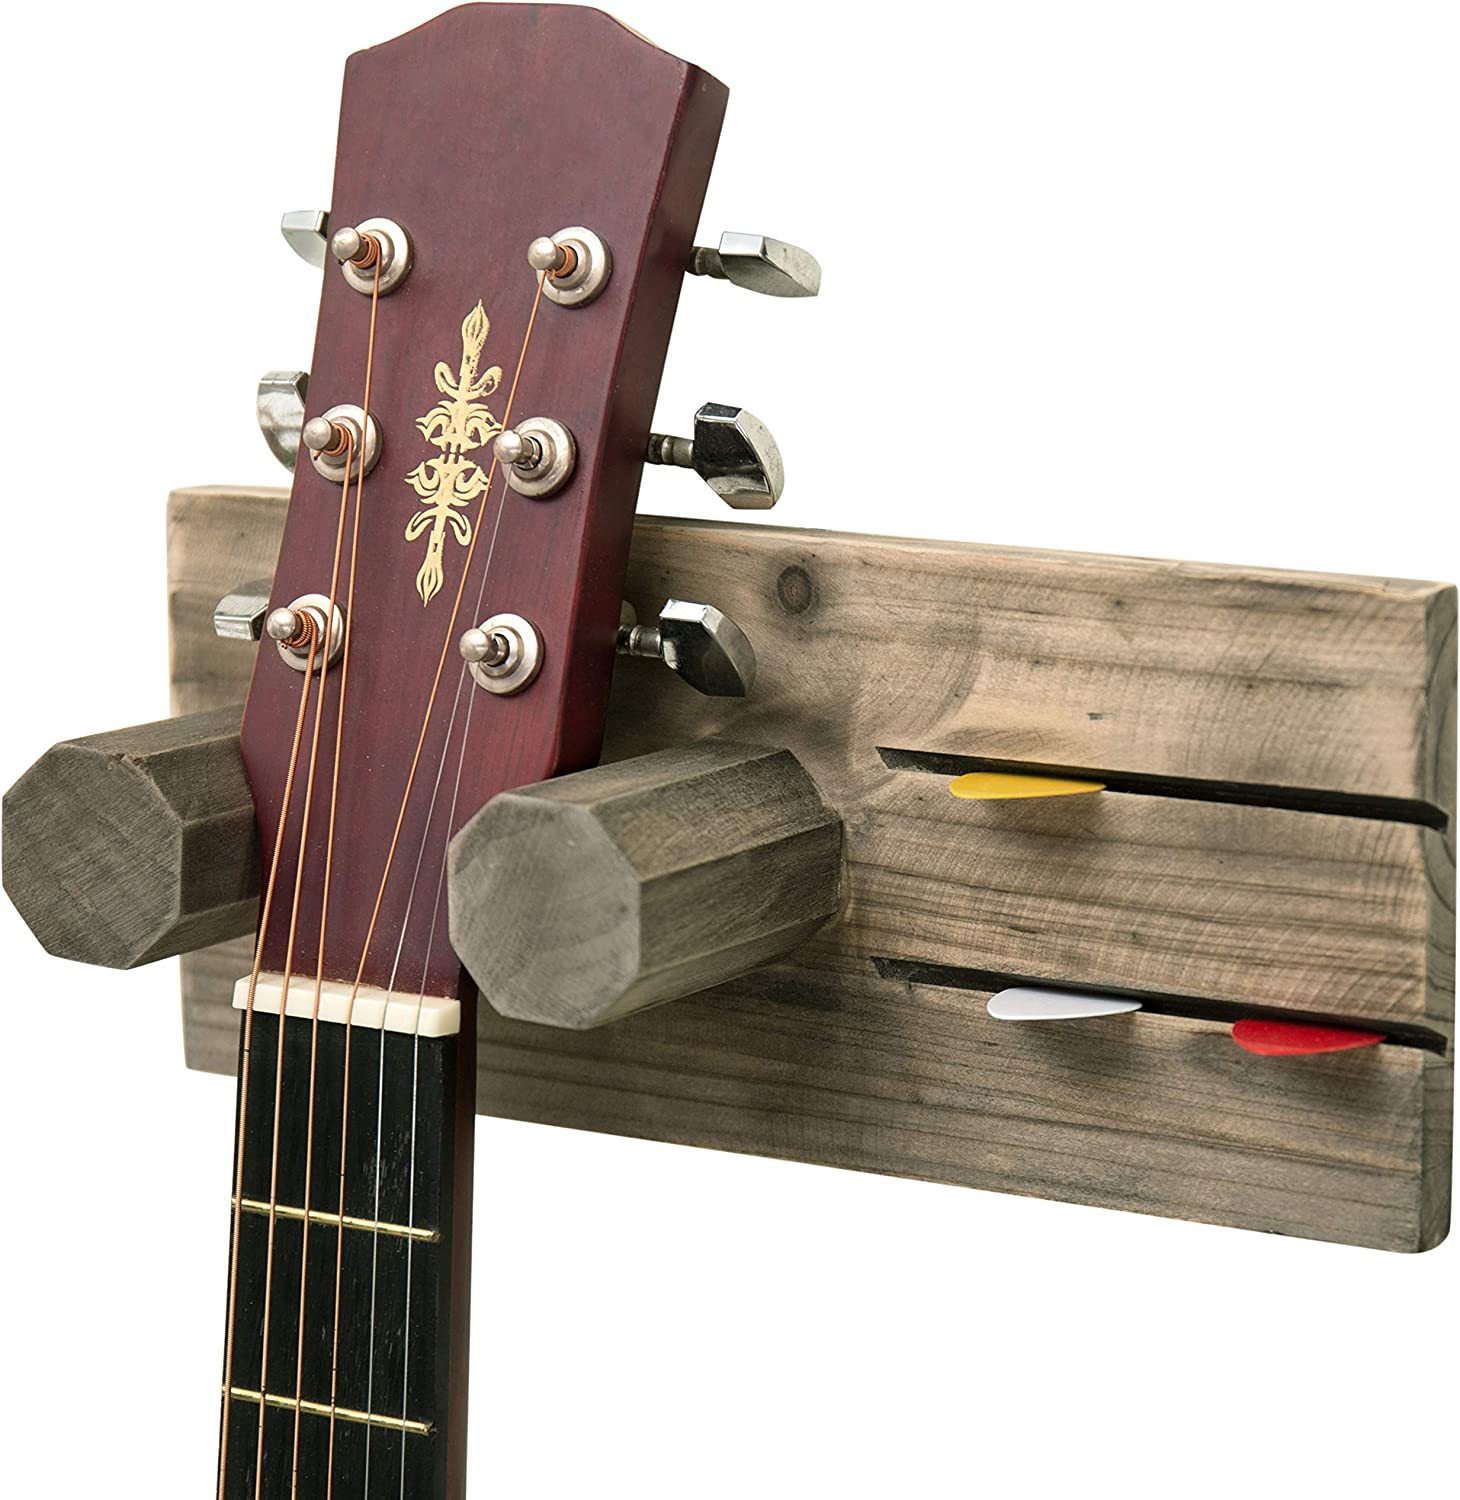 MyGift Wall-Mounted Graywashed Brown Wood Guitar Hanging Rack with Pick Holder